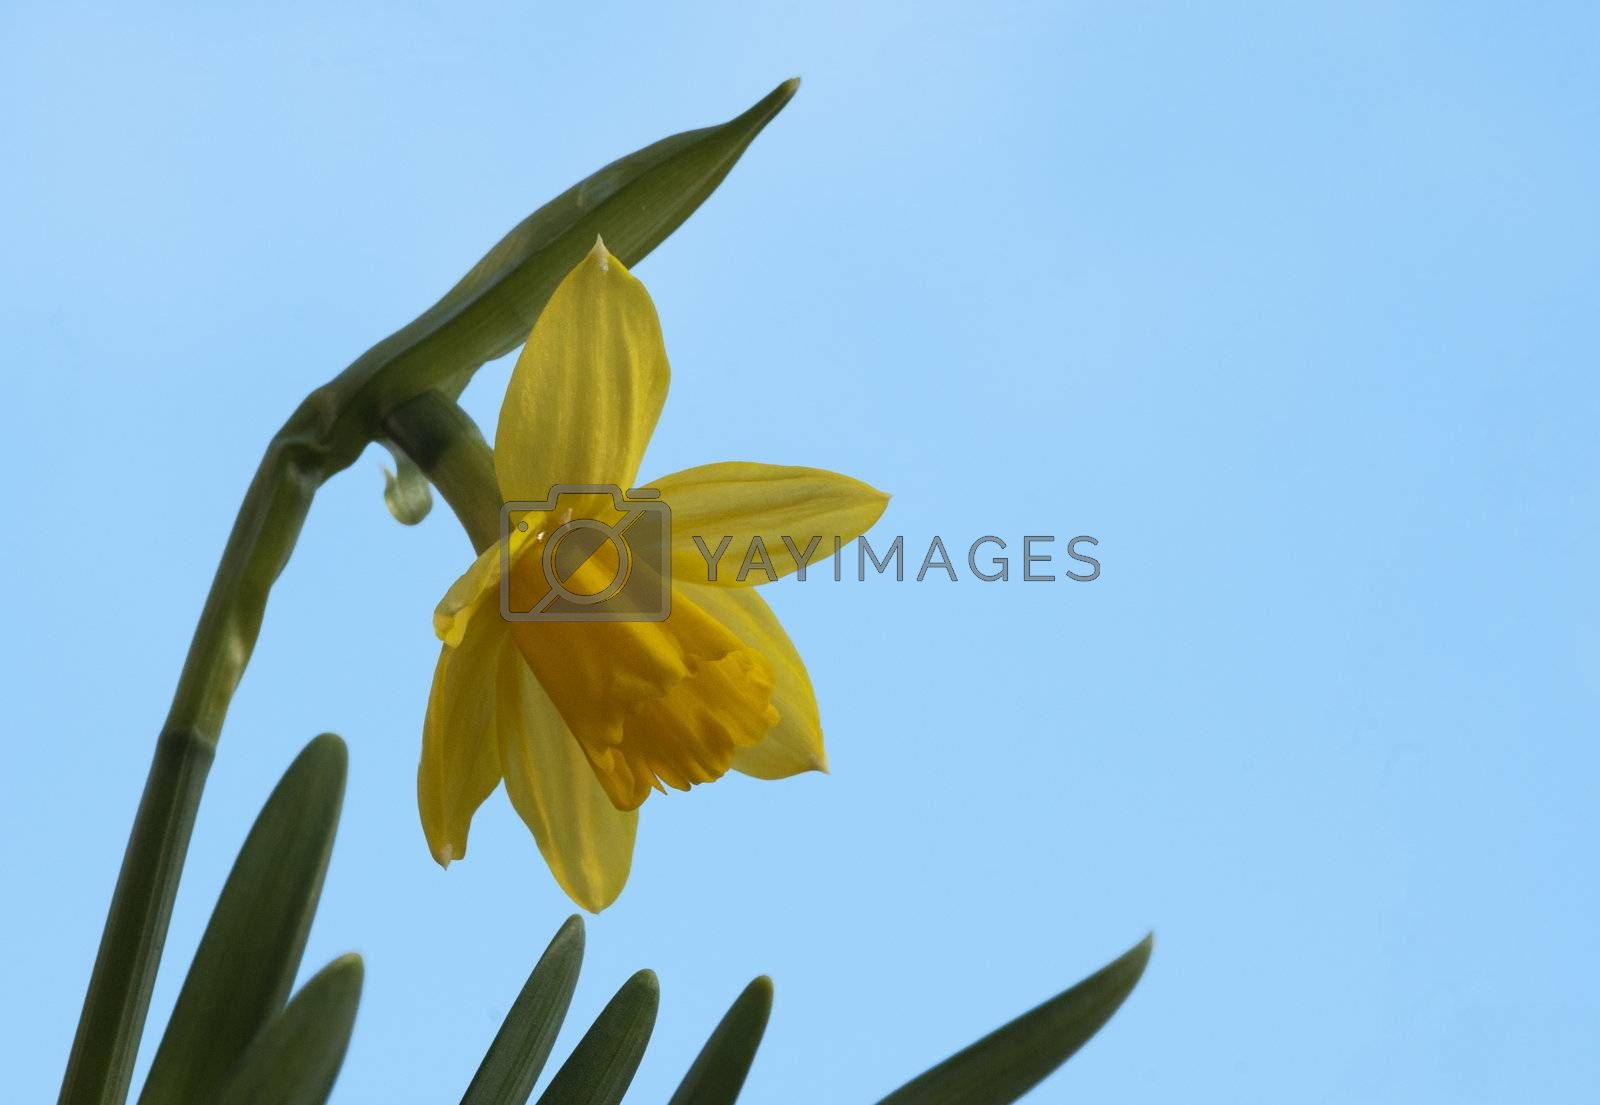 yellow daffodil with blue sky